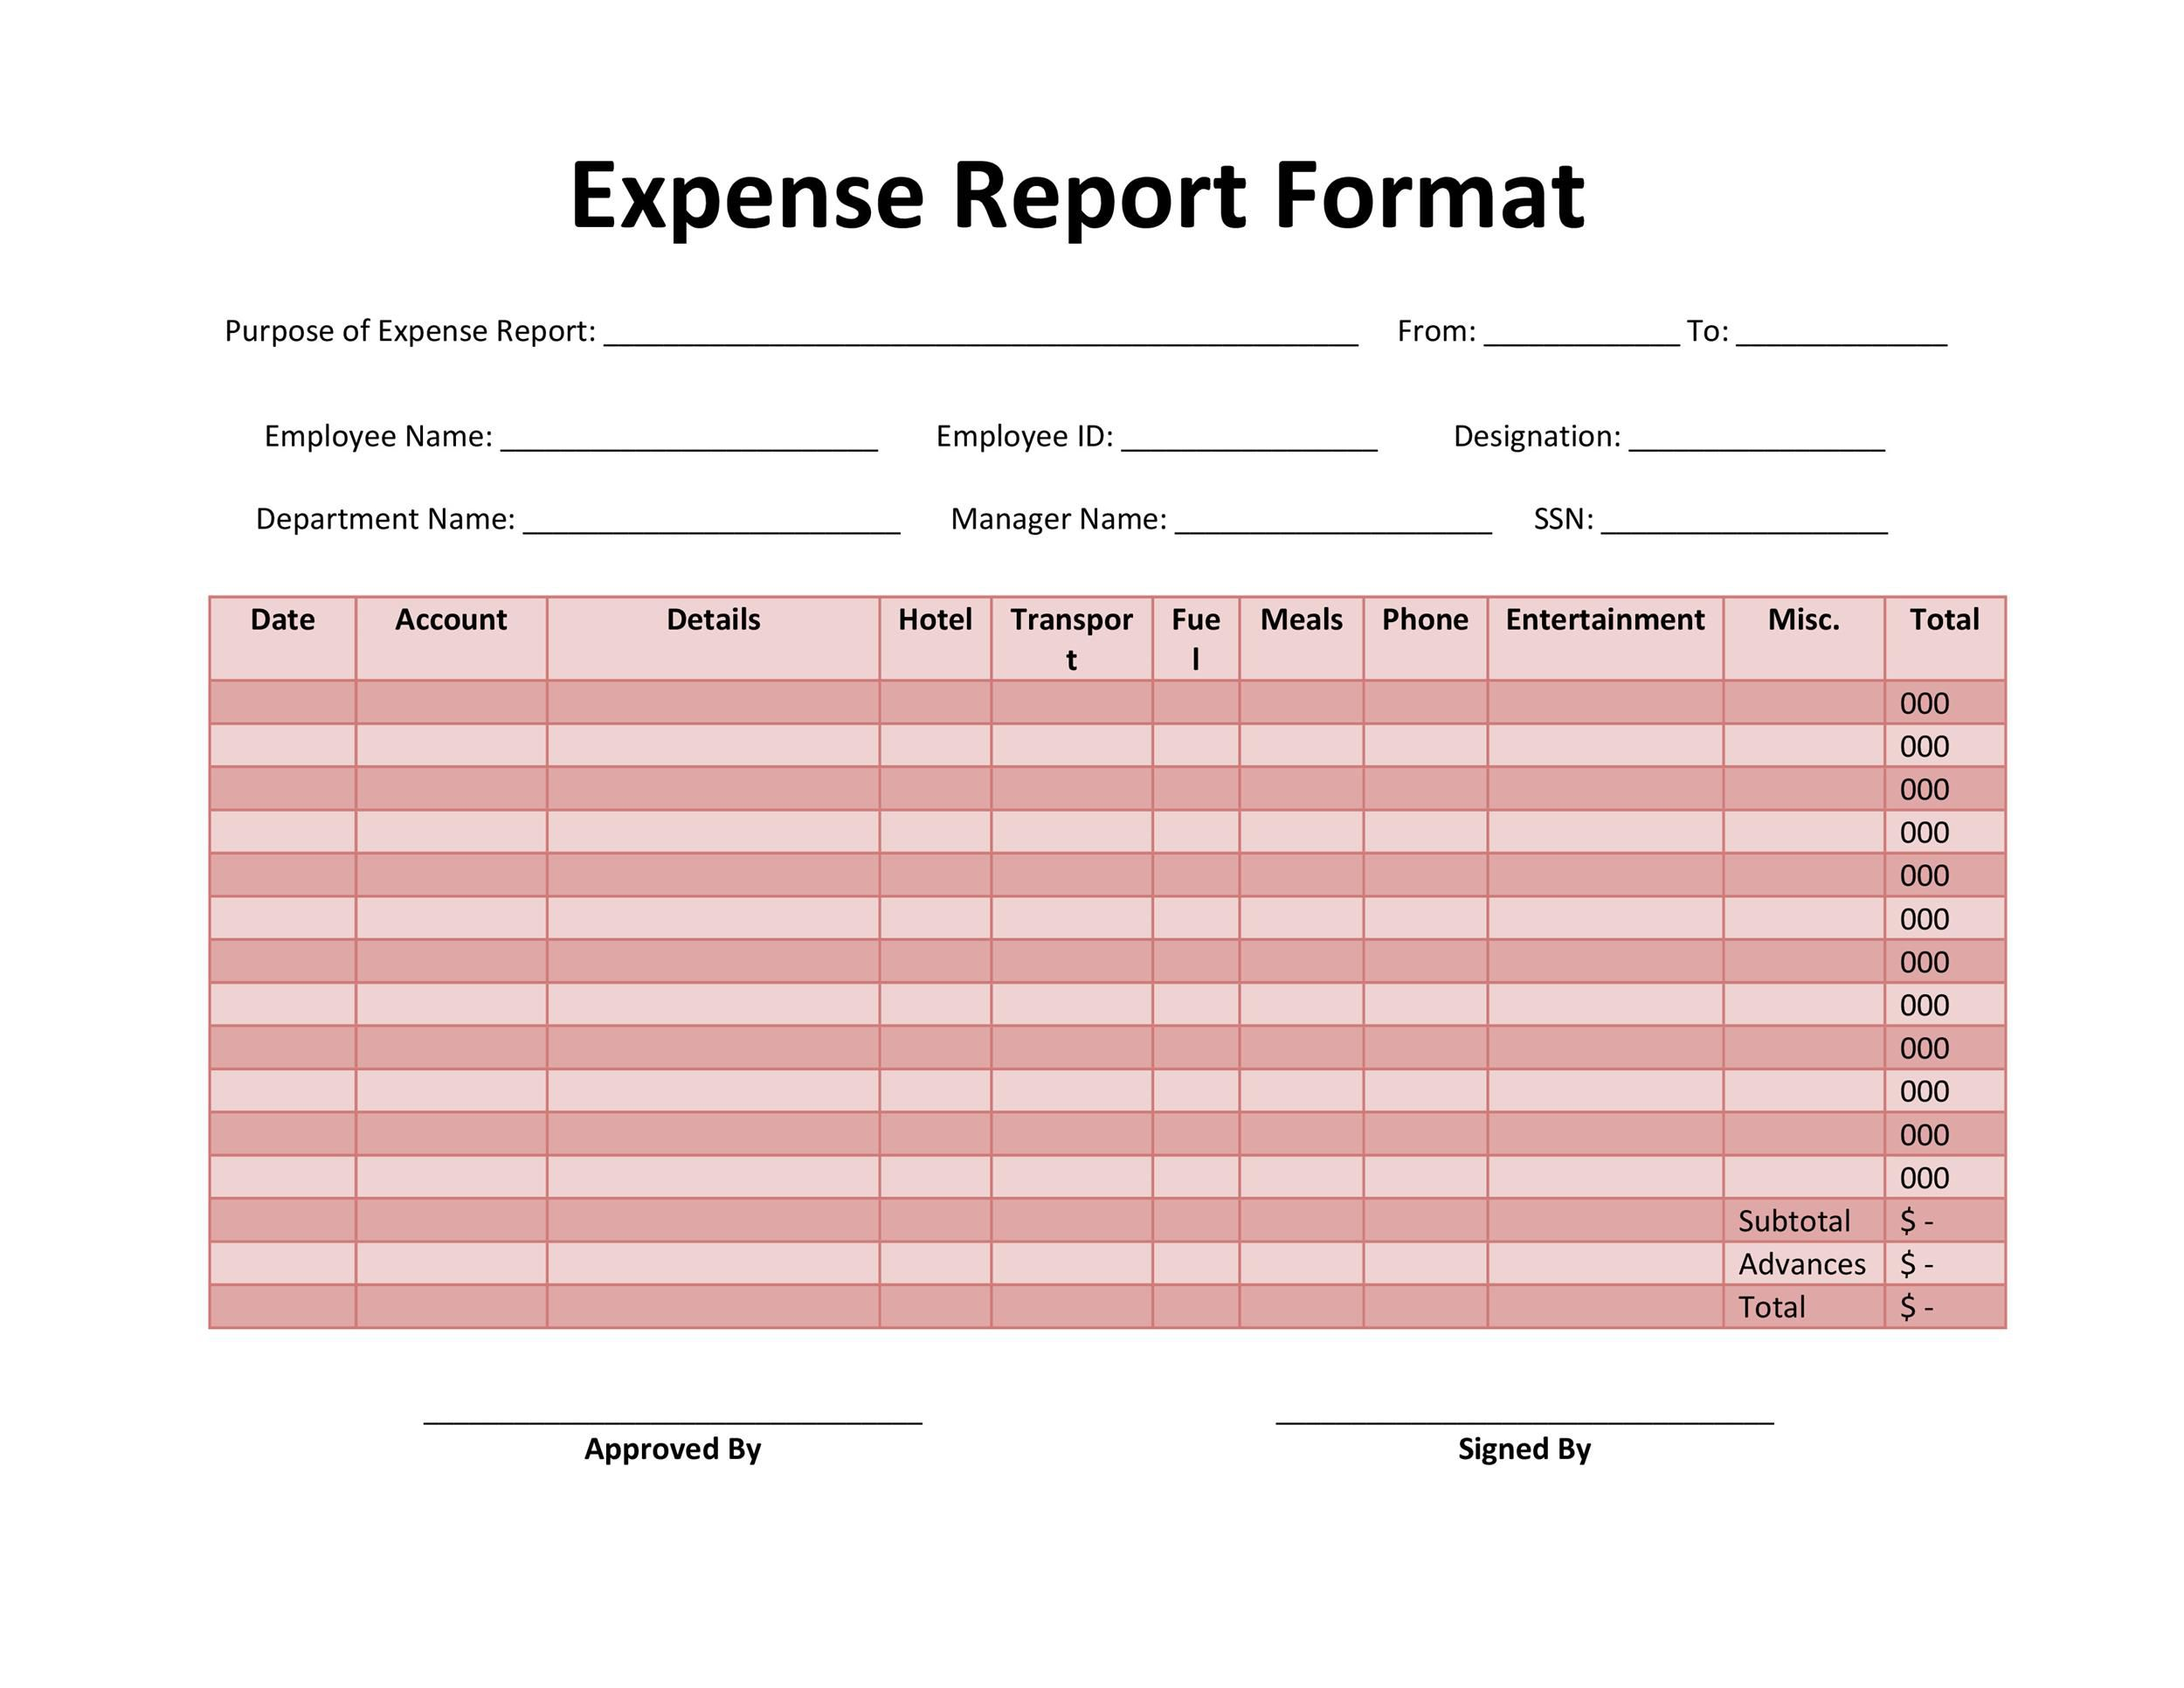 005 Top Expense Report Template Excel Photo  Free Format 2010Full